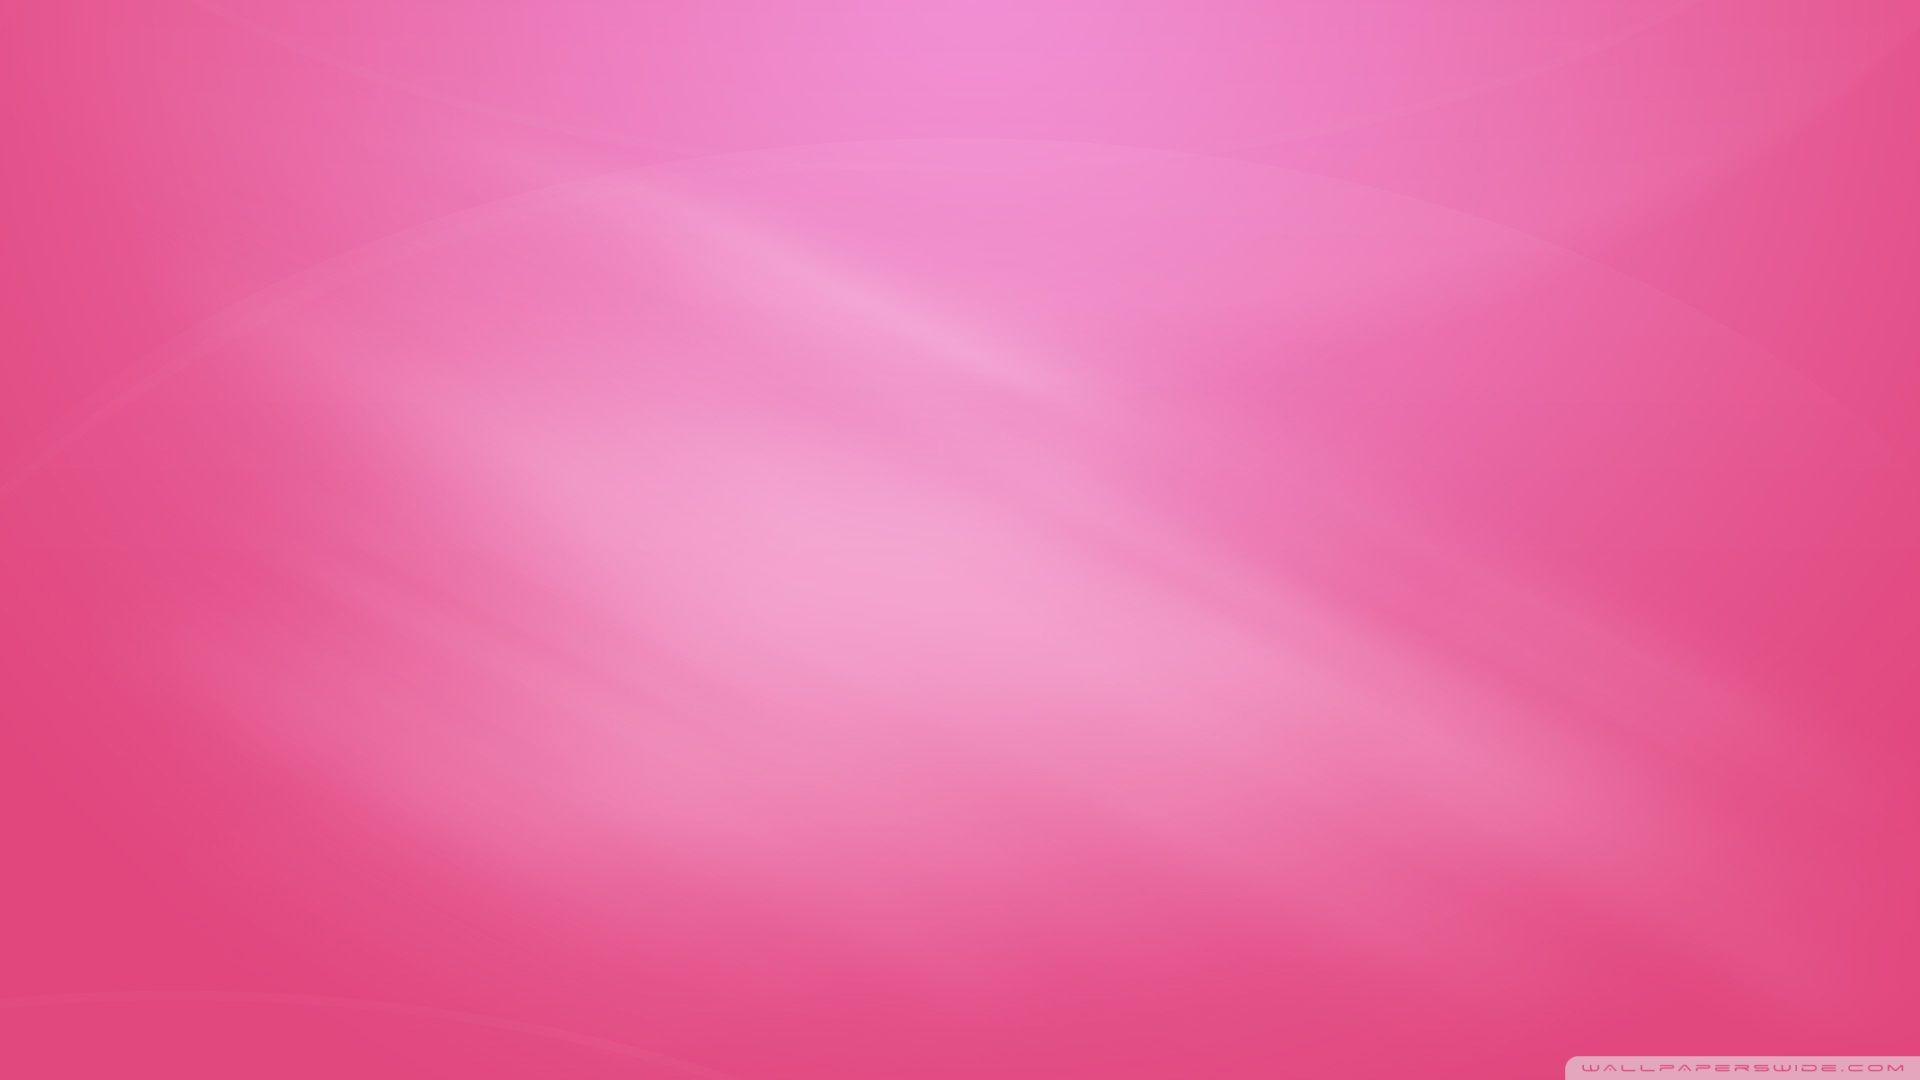 High Resolution Pink Wallpapers Top Free High Resolution Pink Backgrounds Wallpaperaccess